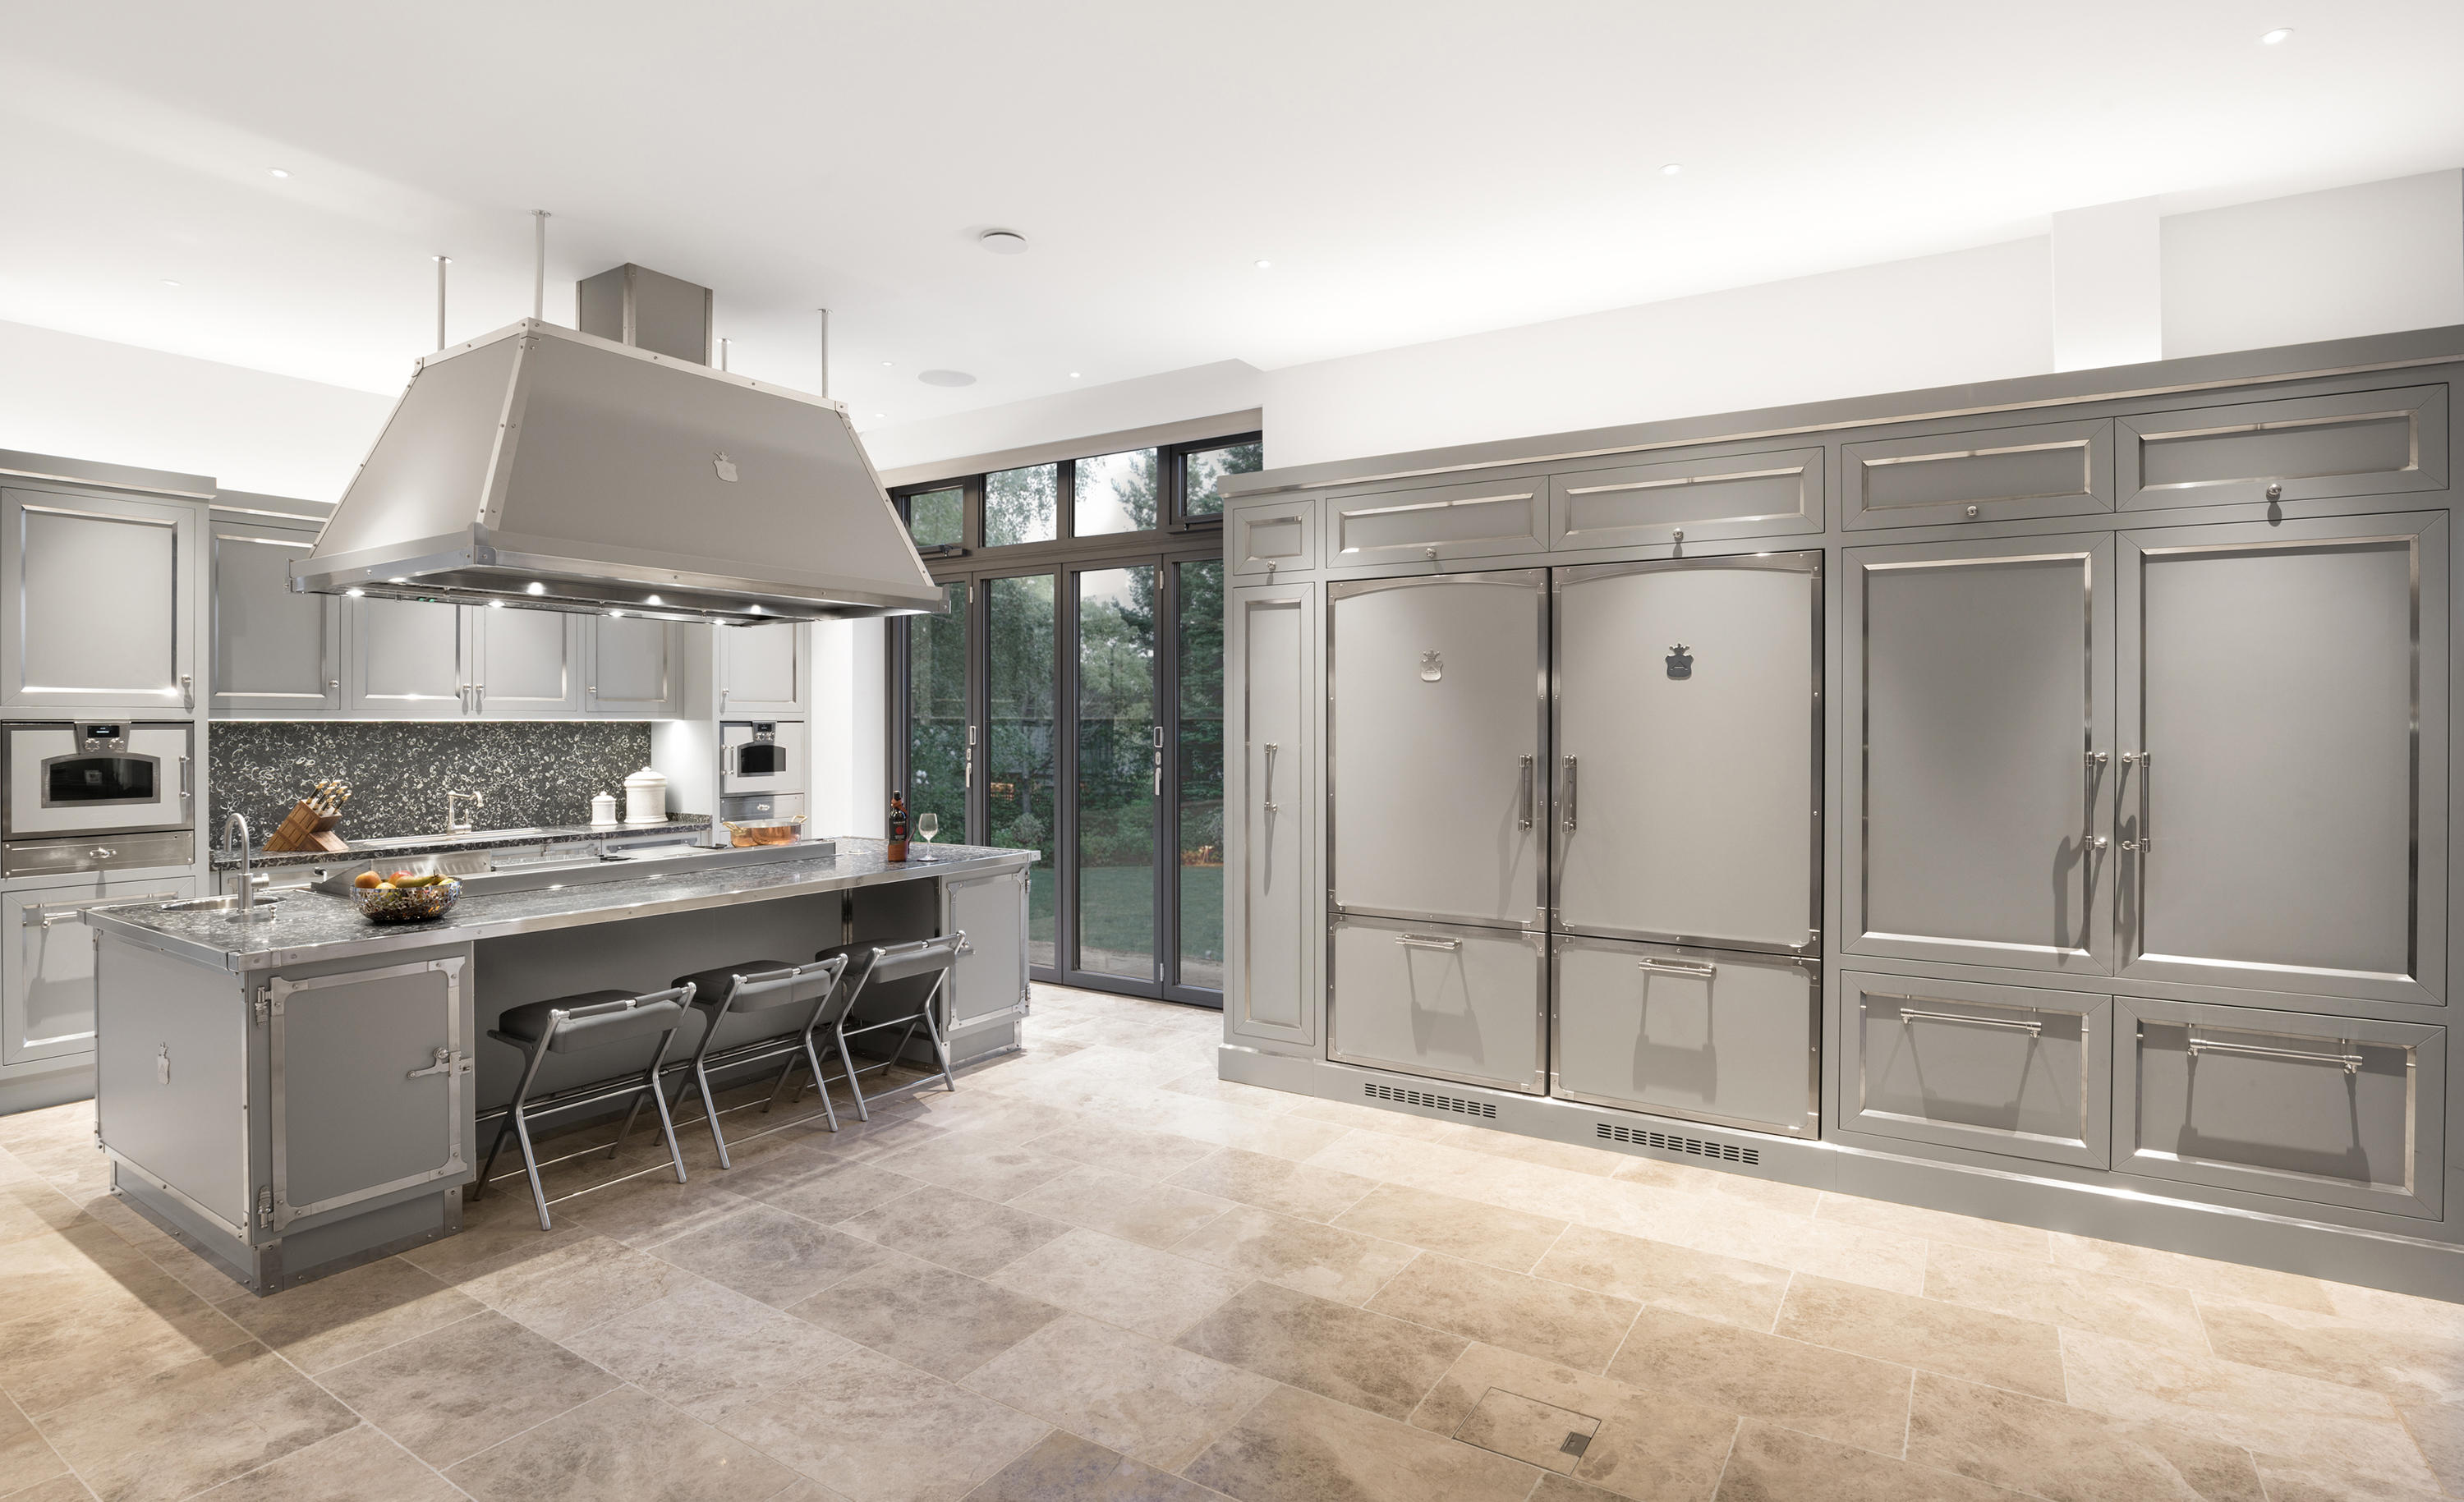 SOFT GREY NICHELED BRASS KITCHEN Fitted Kitchens From Officine - Soft grey kitchen